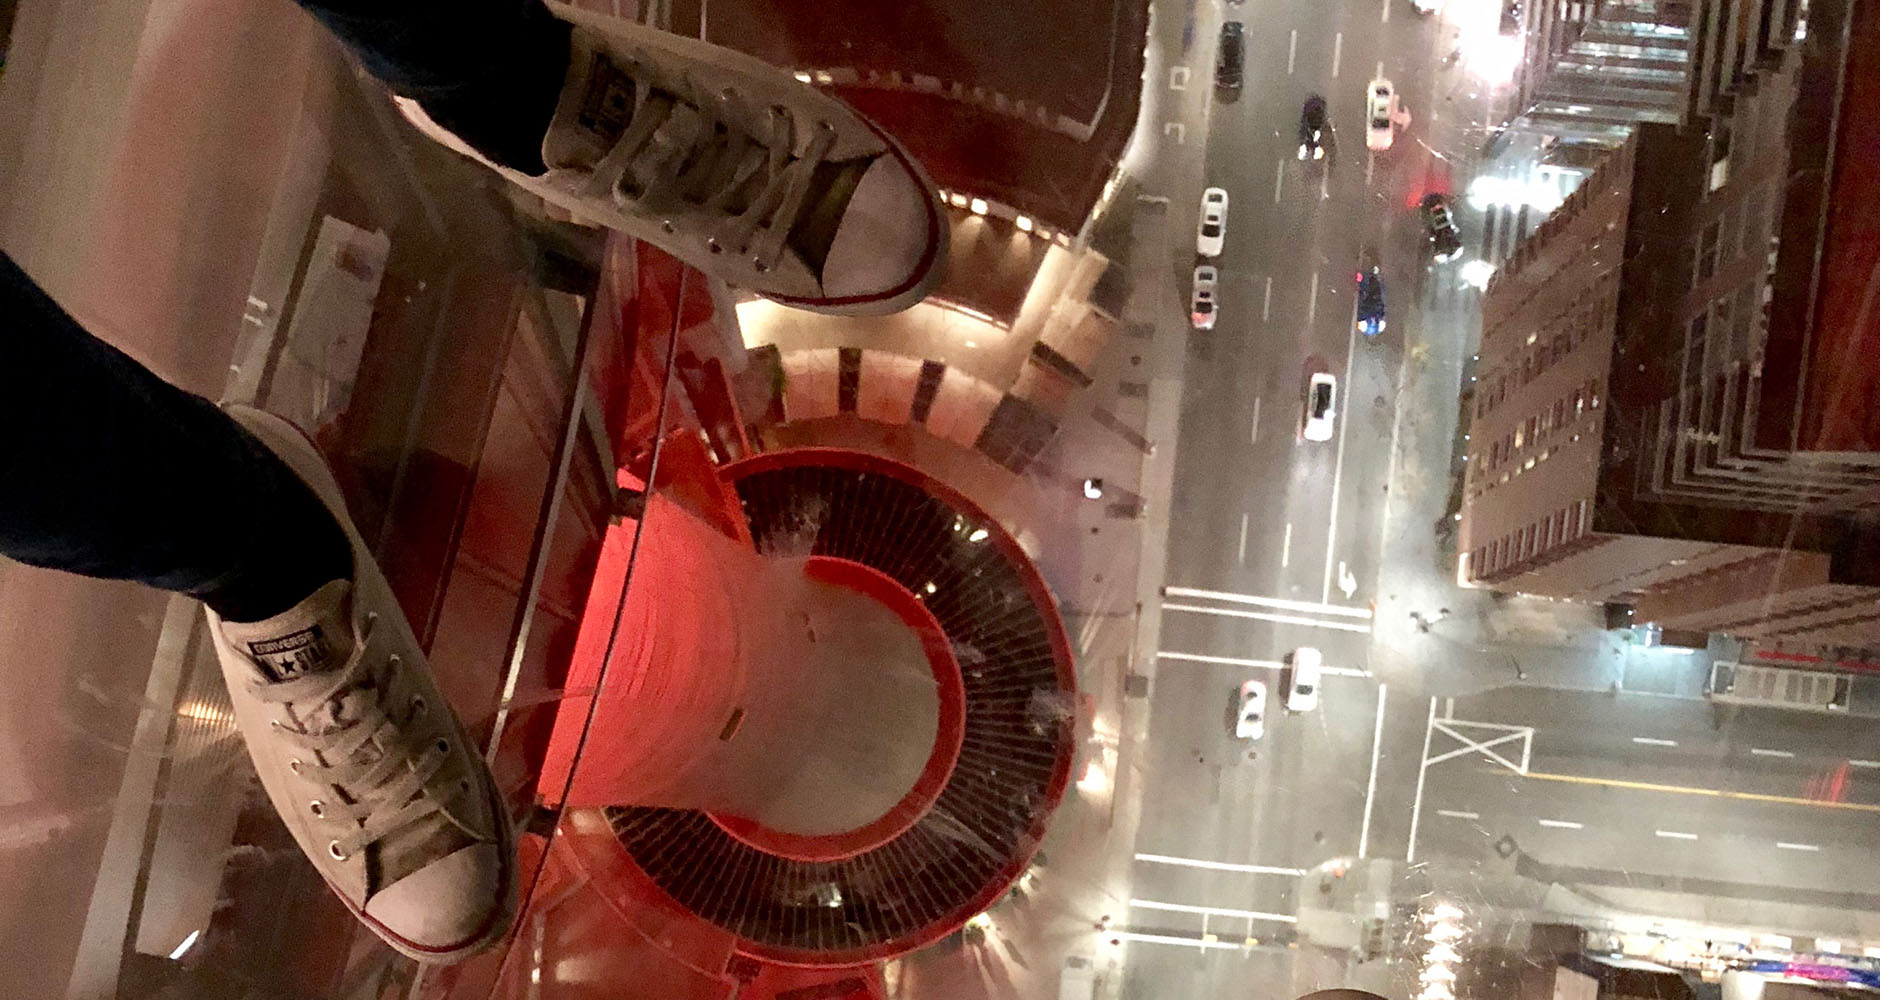 The observation deck in Calgary Tower